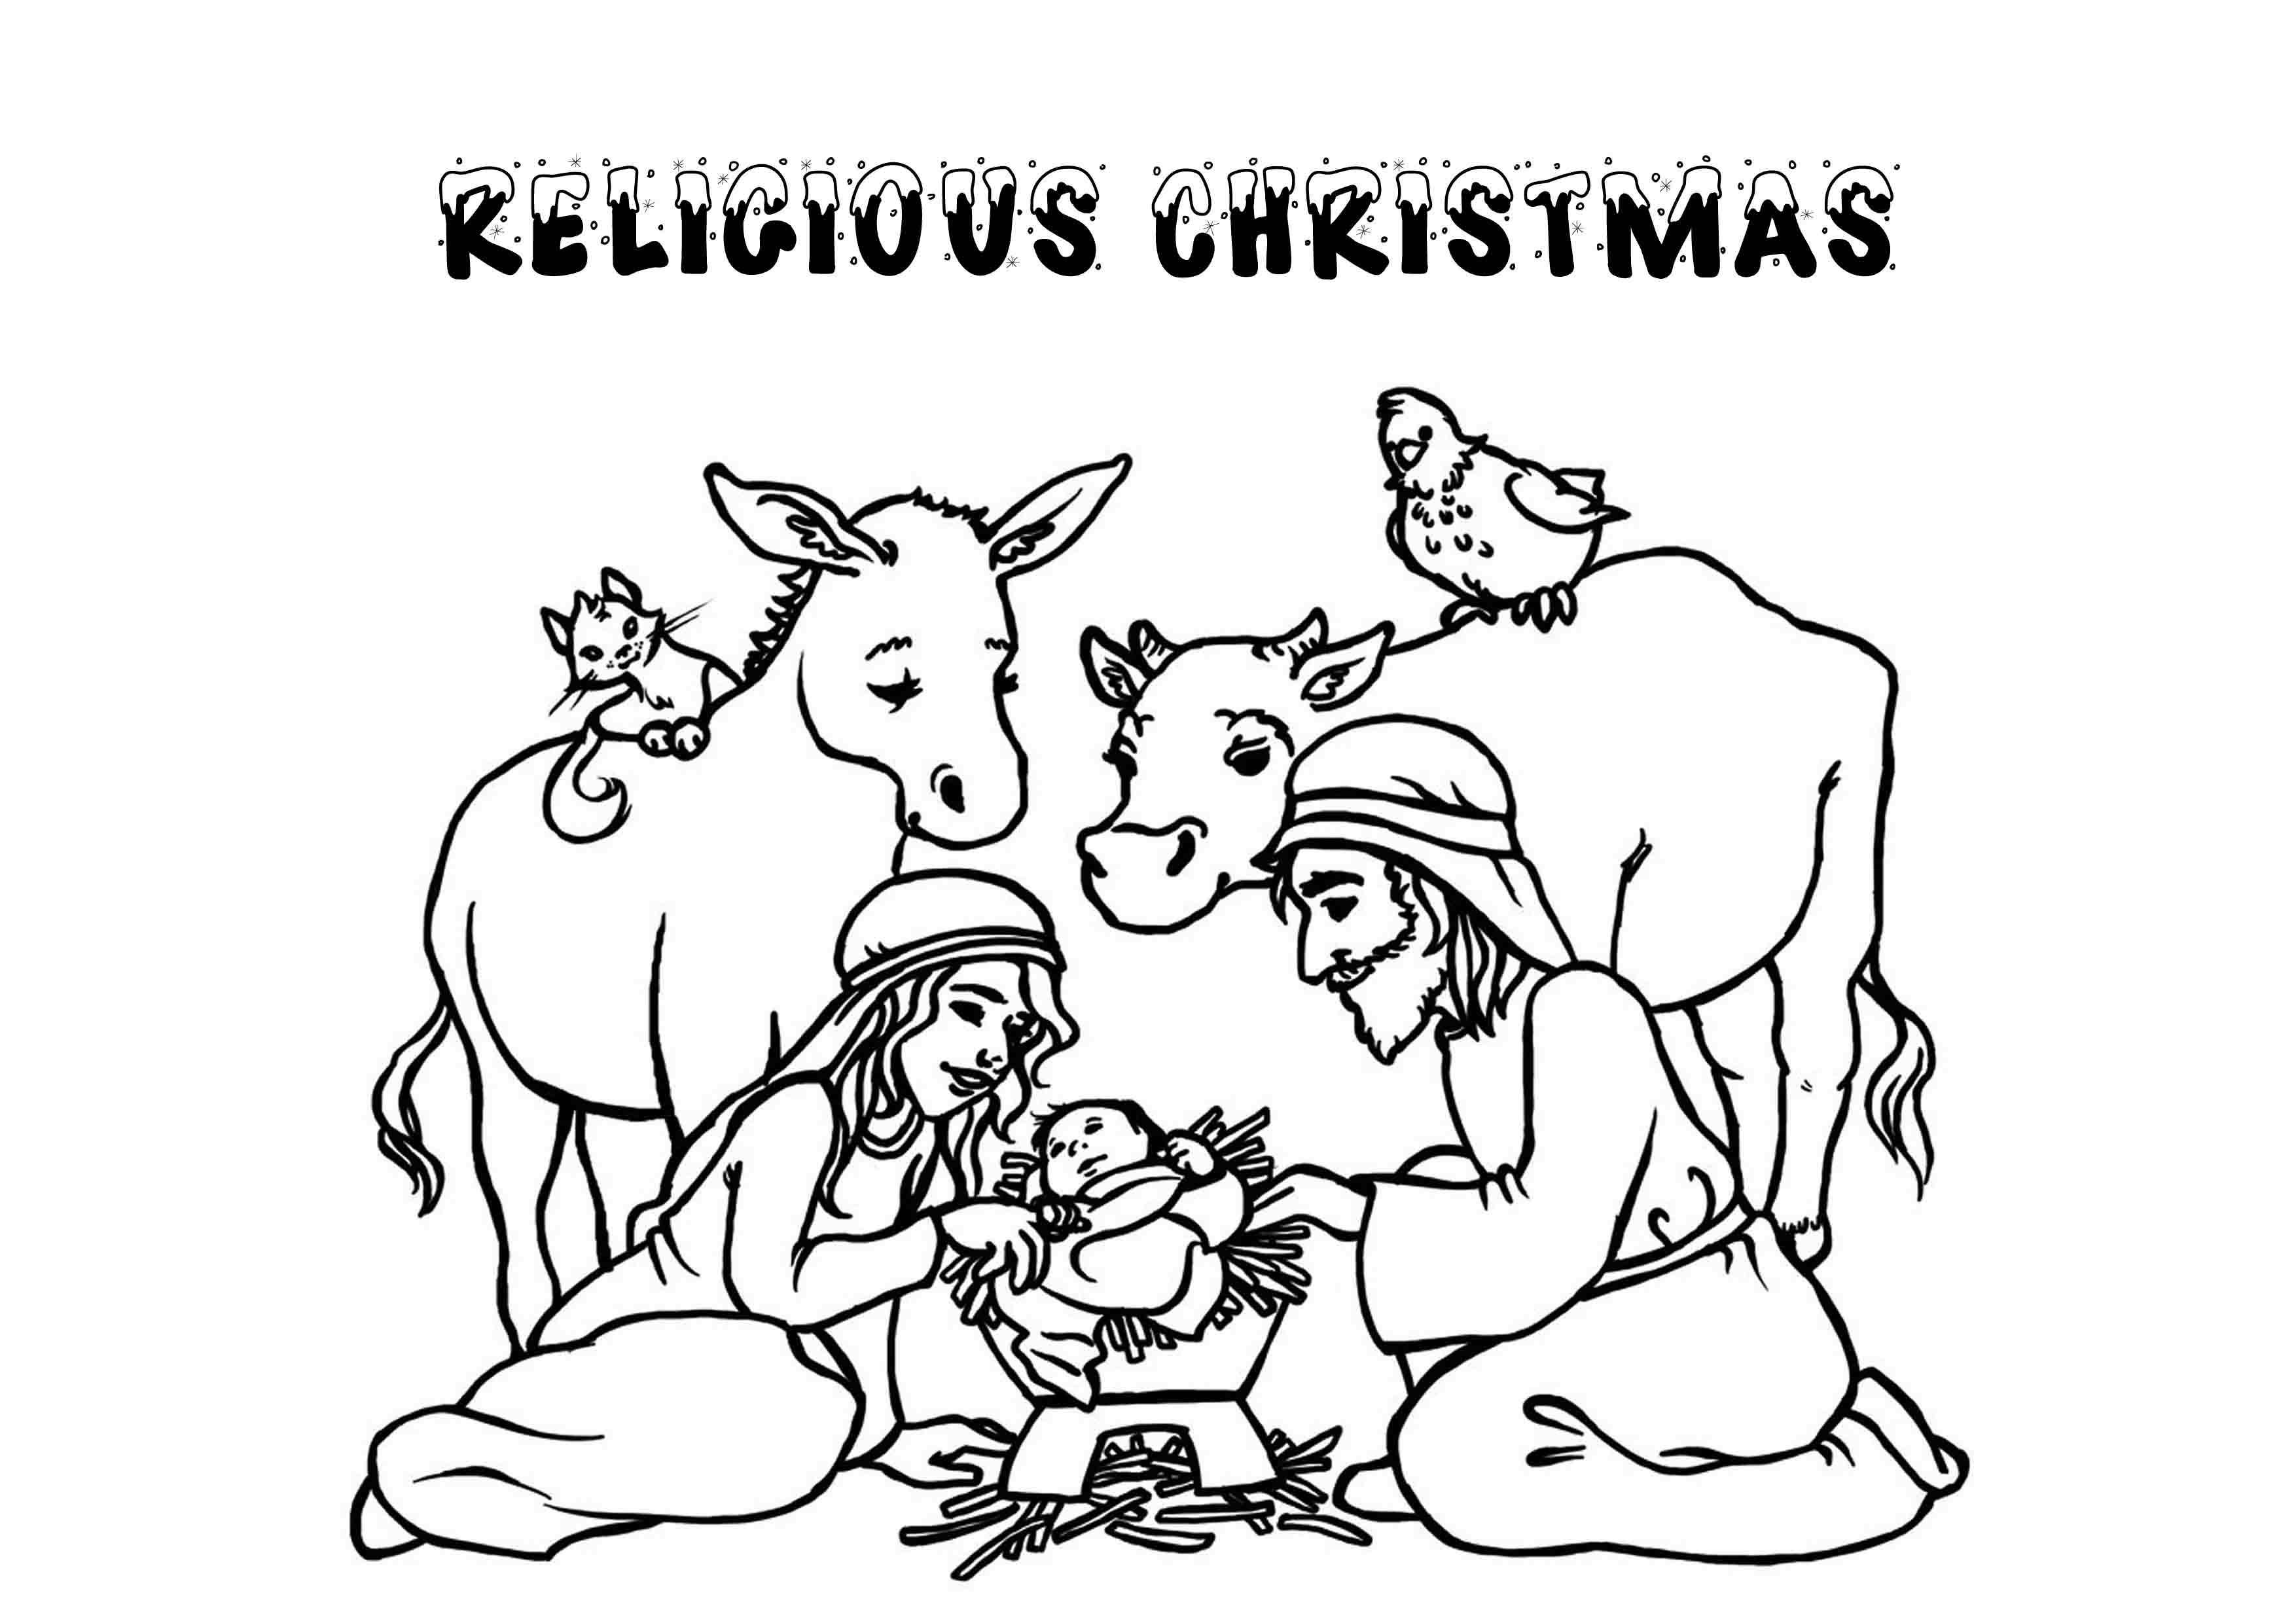 free christian christmas coloring pages printable christmas bible coloring pages at getcoloringscom free free christmas printable christian pages coloring